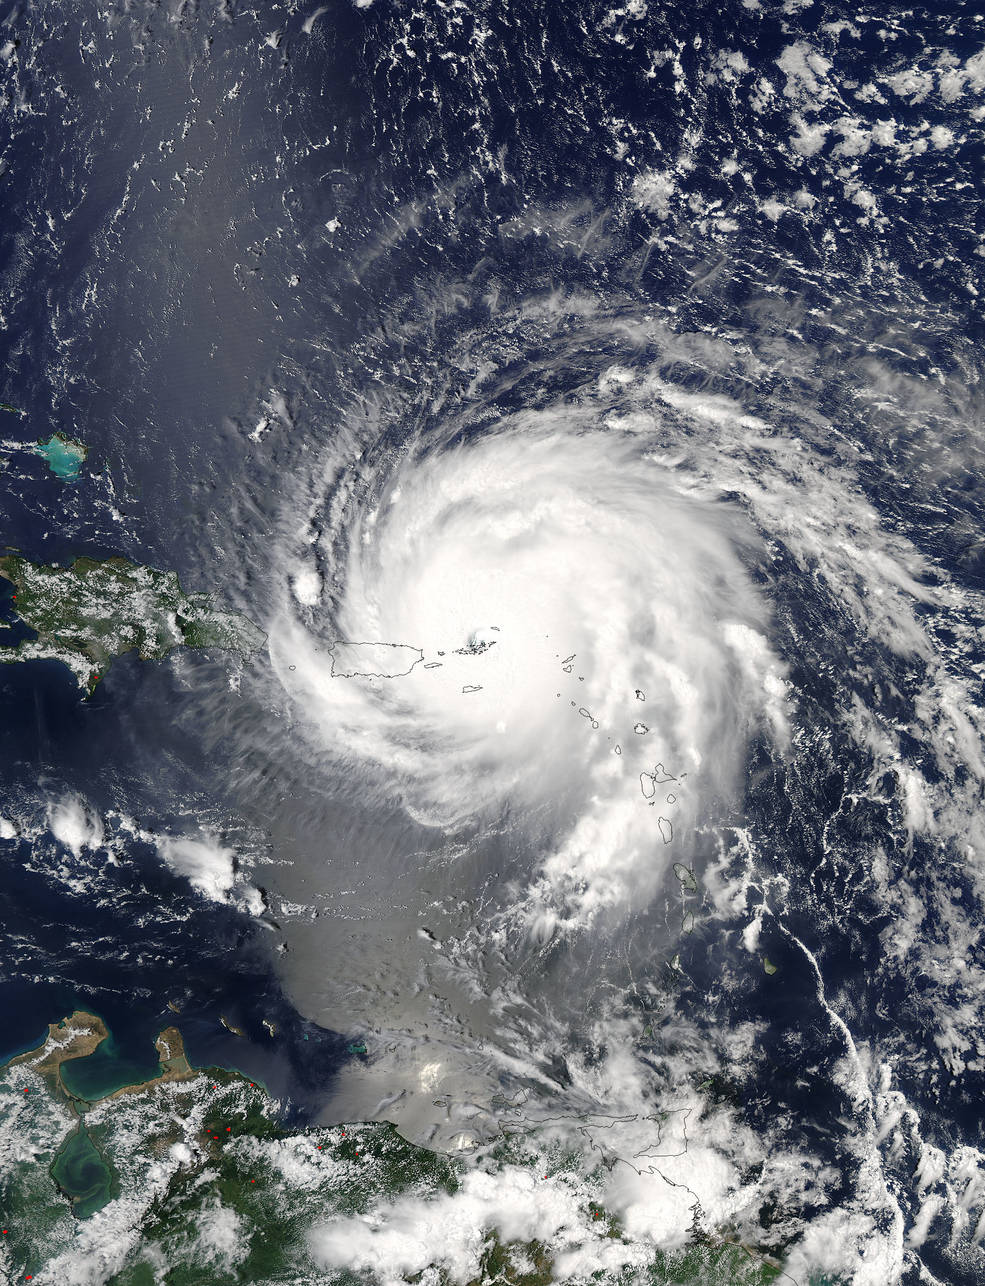 Hurricane Irma: how the storm got so big, intense, and scary